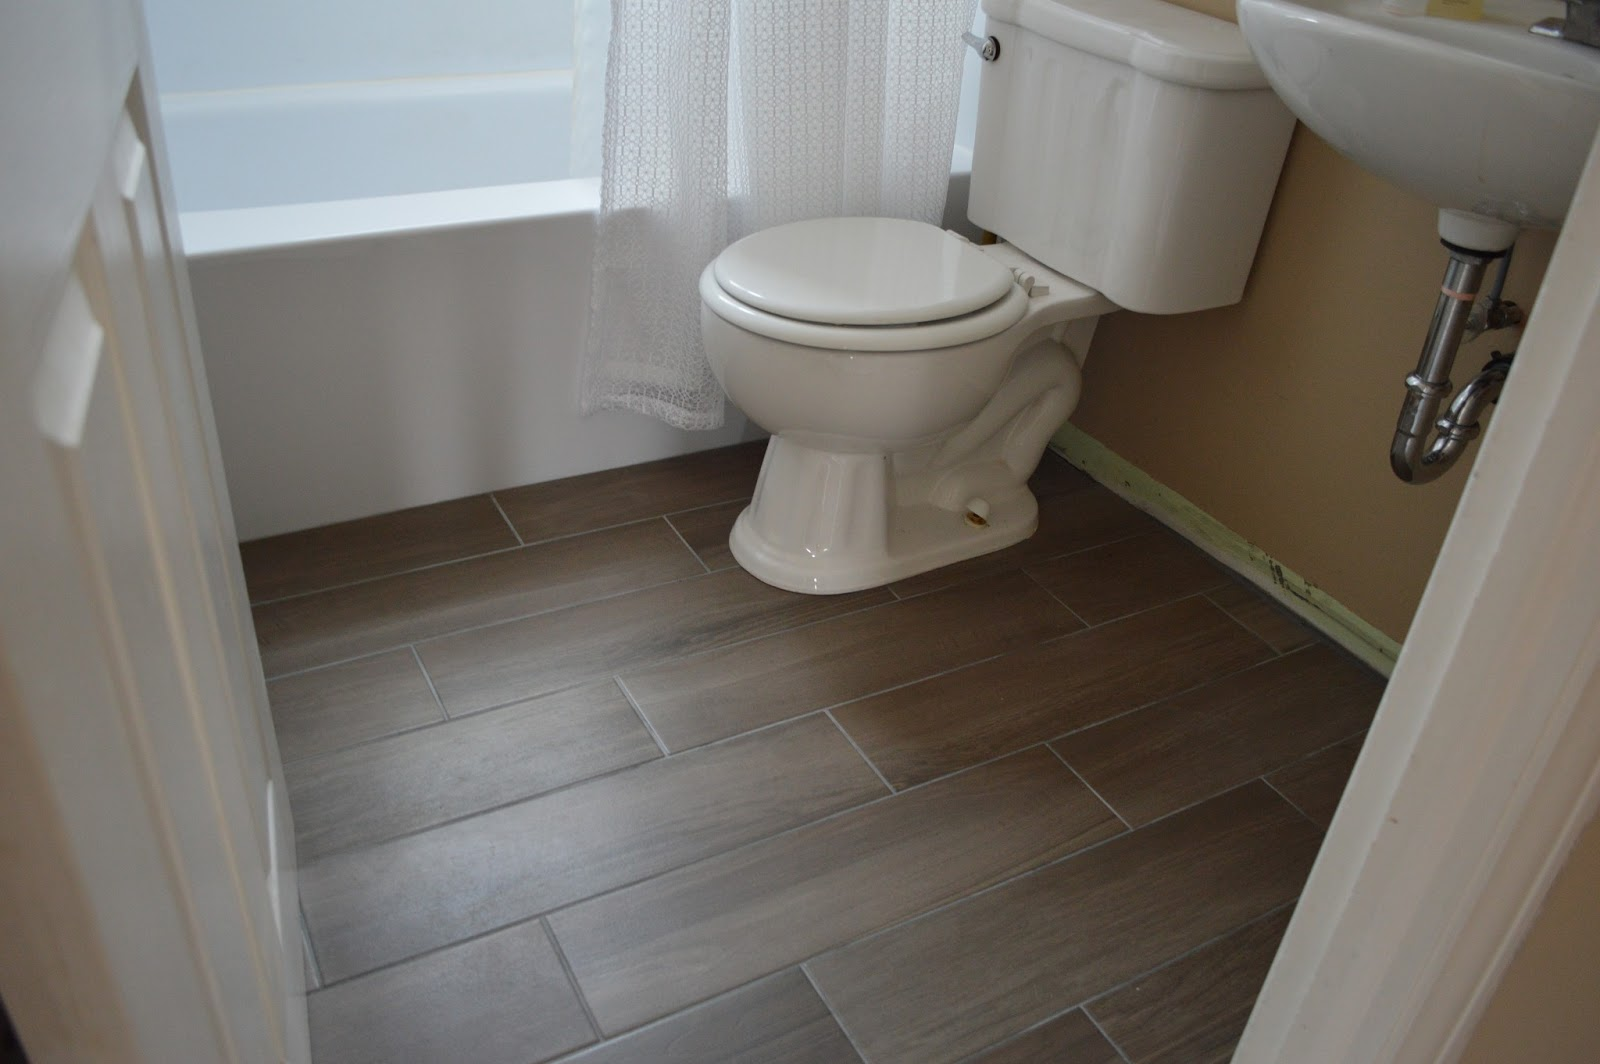 This Kind Handyman and I : When Your Tile Grout Turns White, This ...